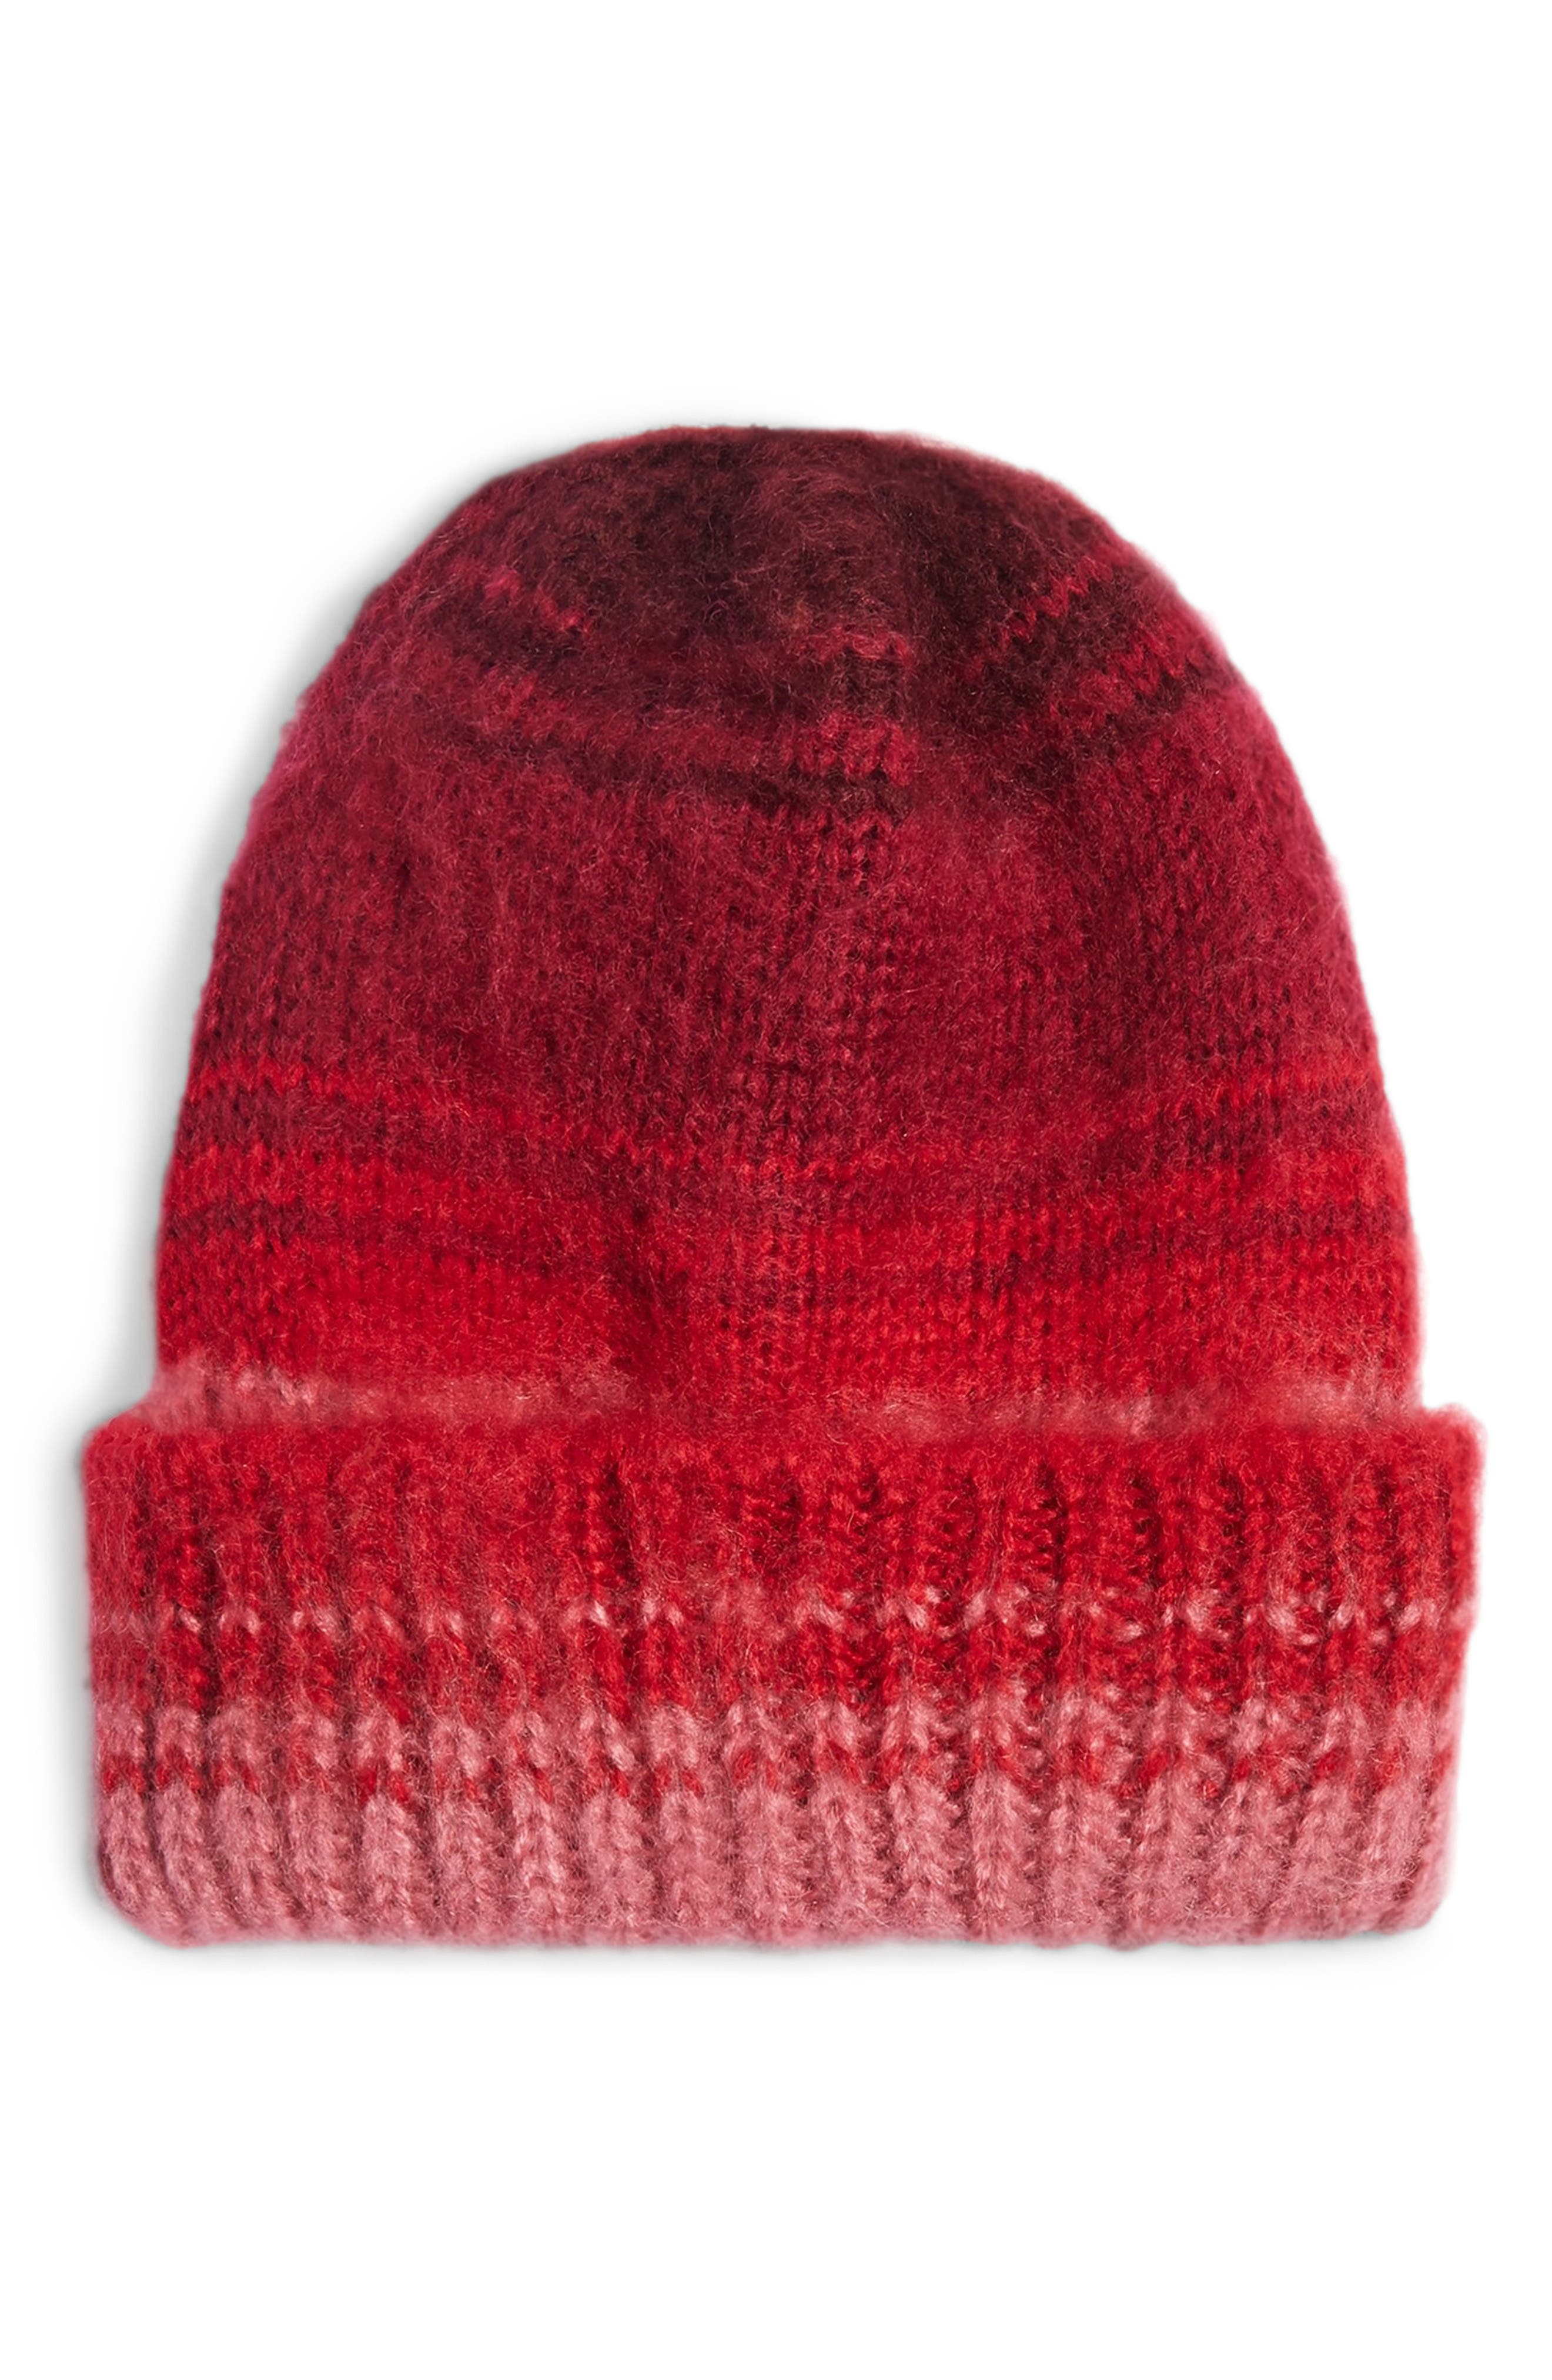 Topshop Brushed Ombre Beanie - Red